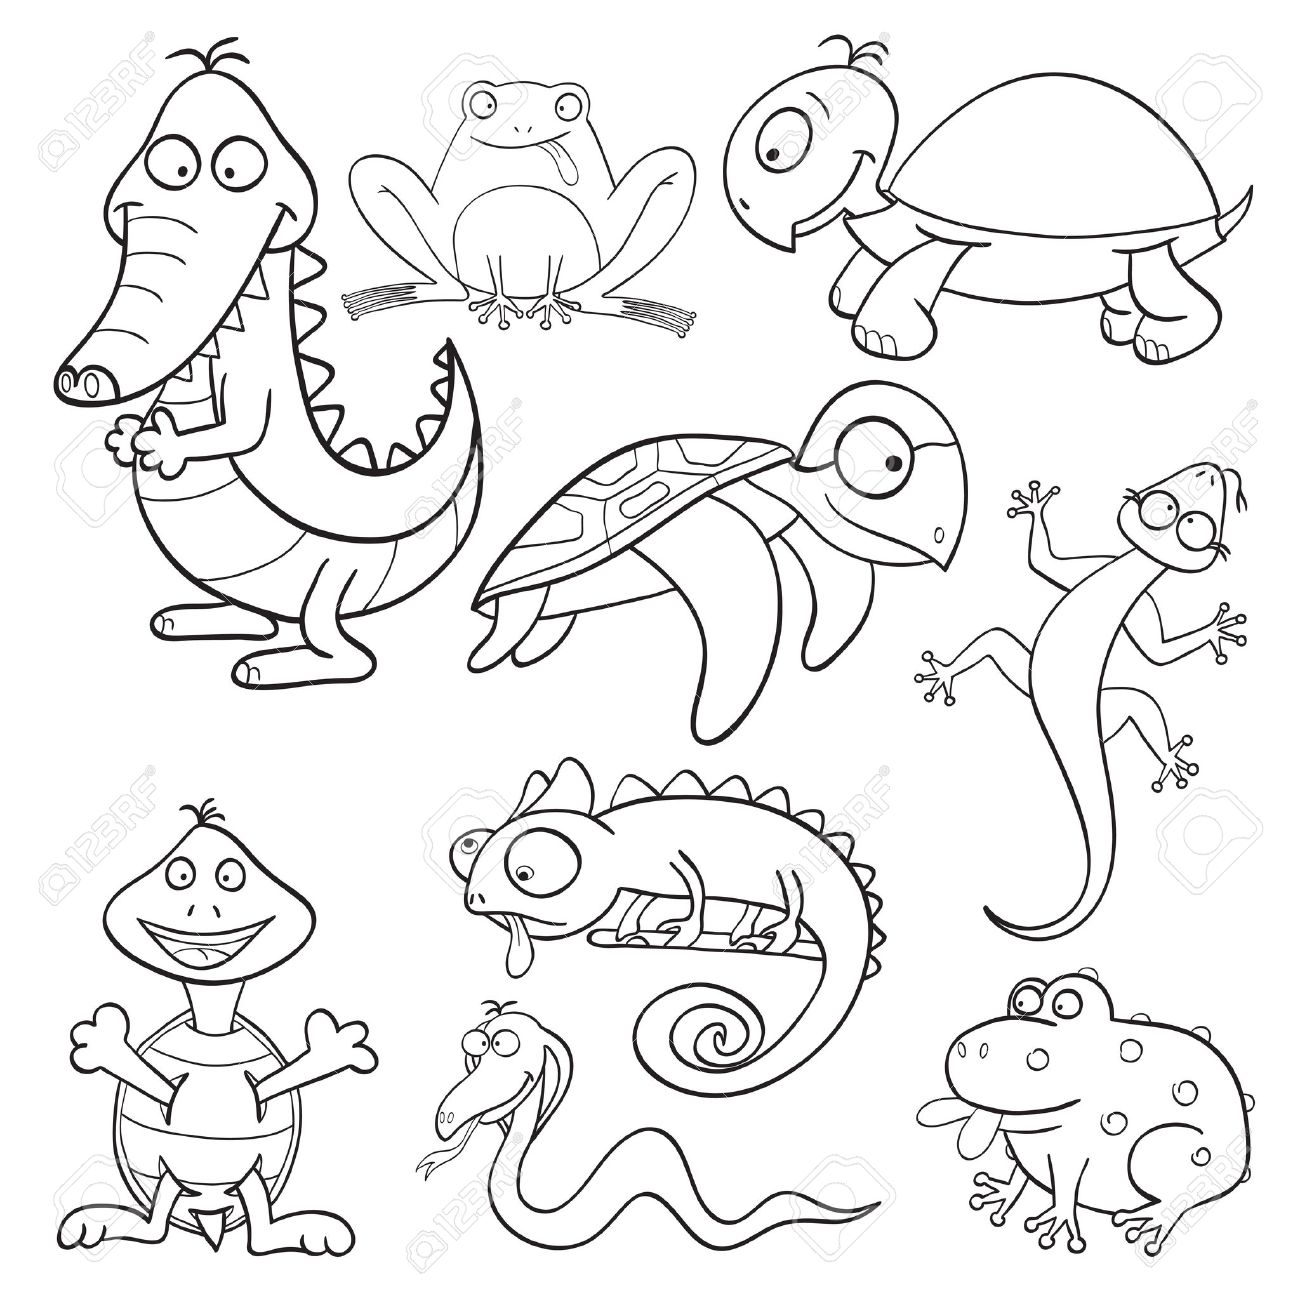 1300x1300 Outlined Cute Cartoon Reptiles And Amphibians For Coloring Book